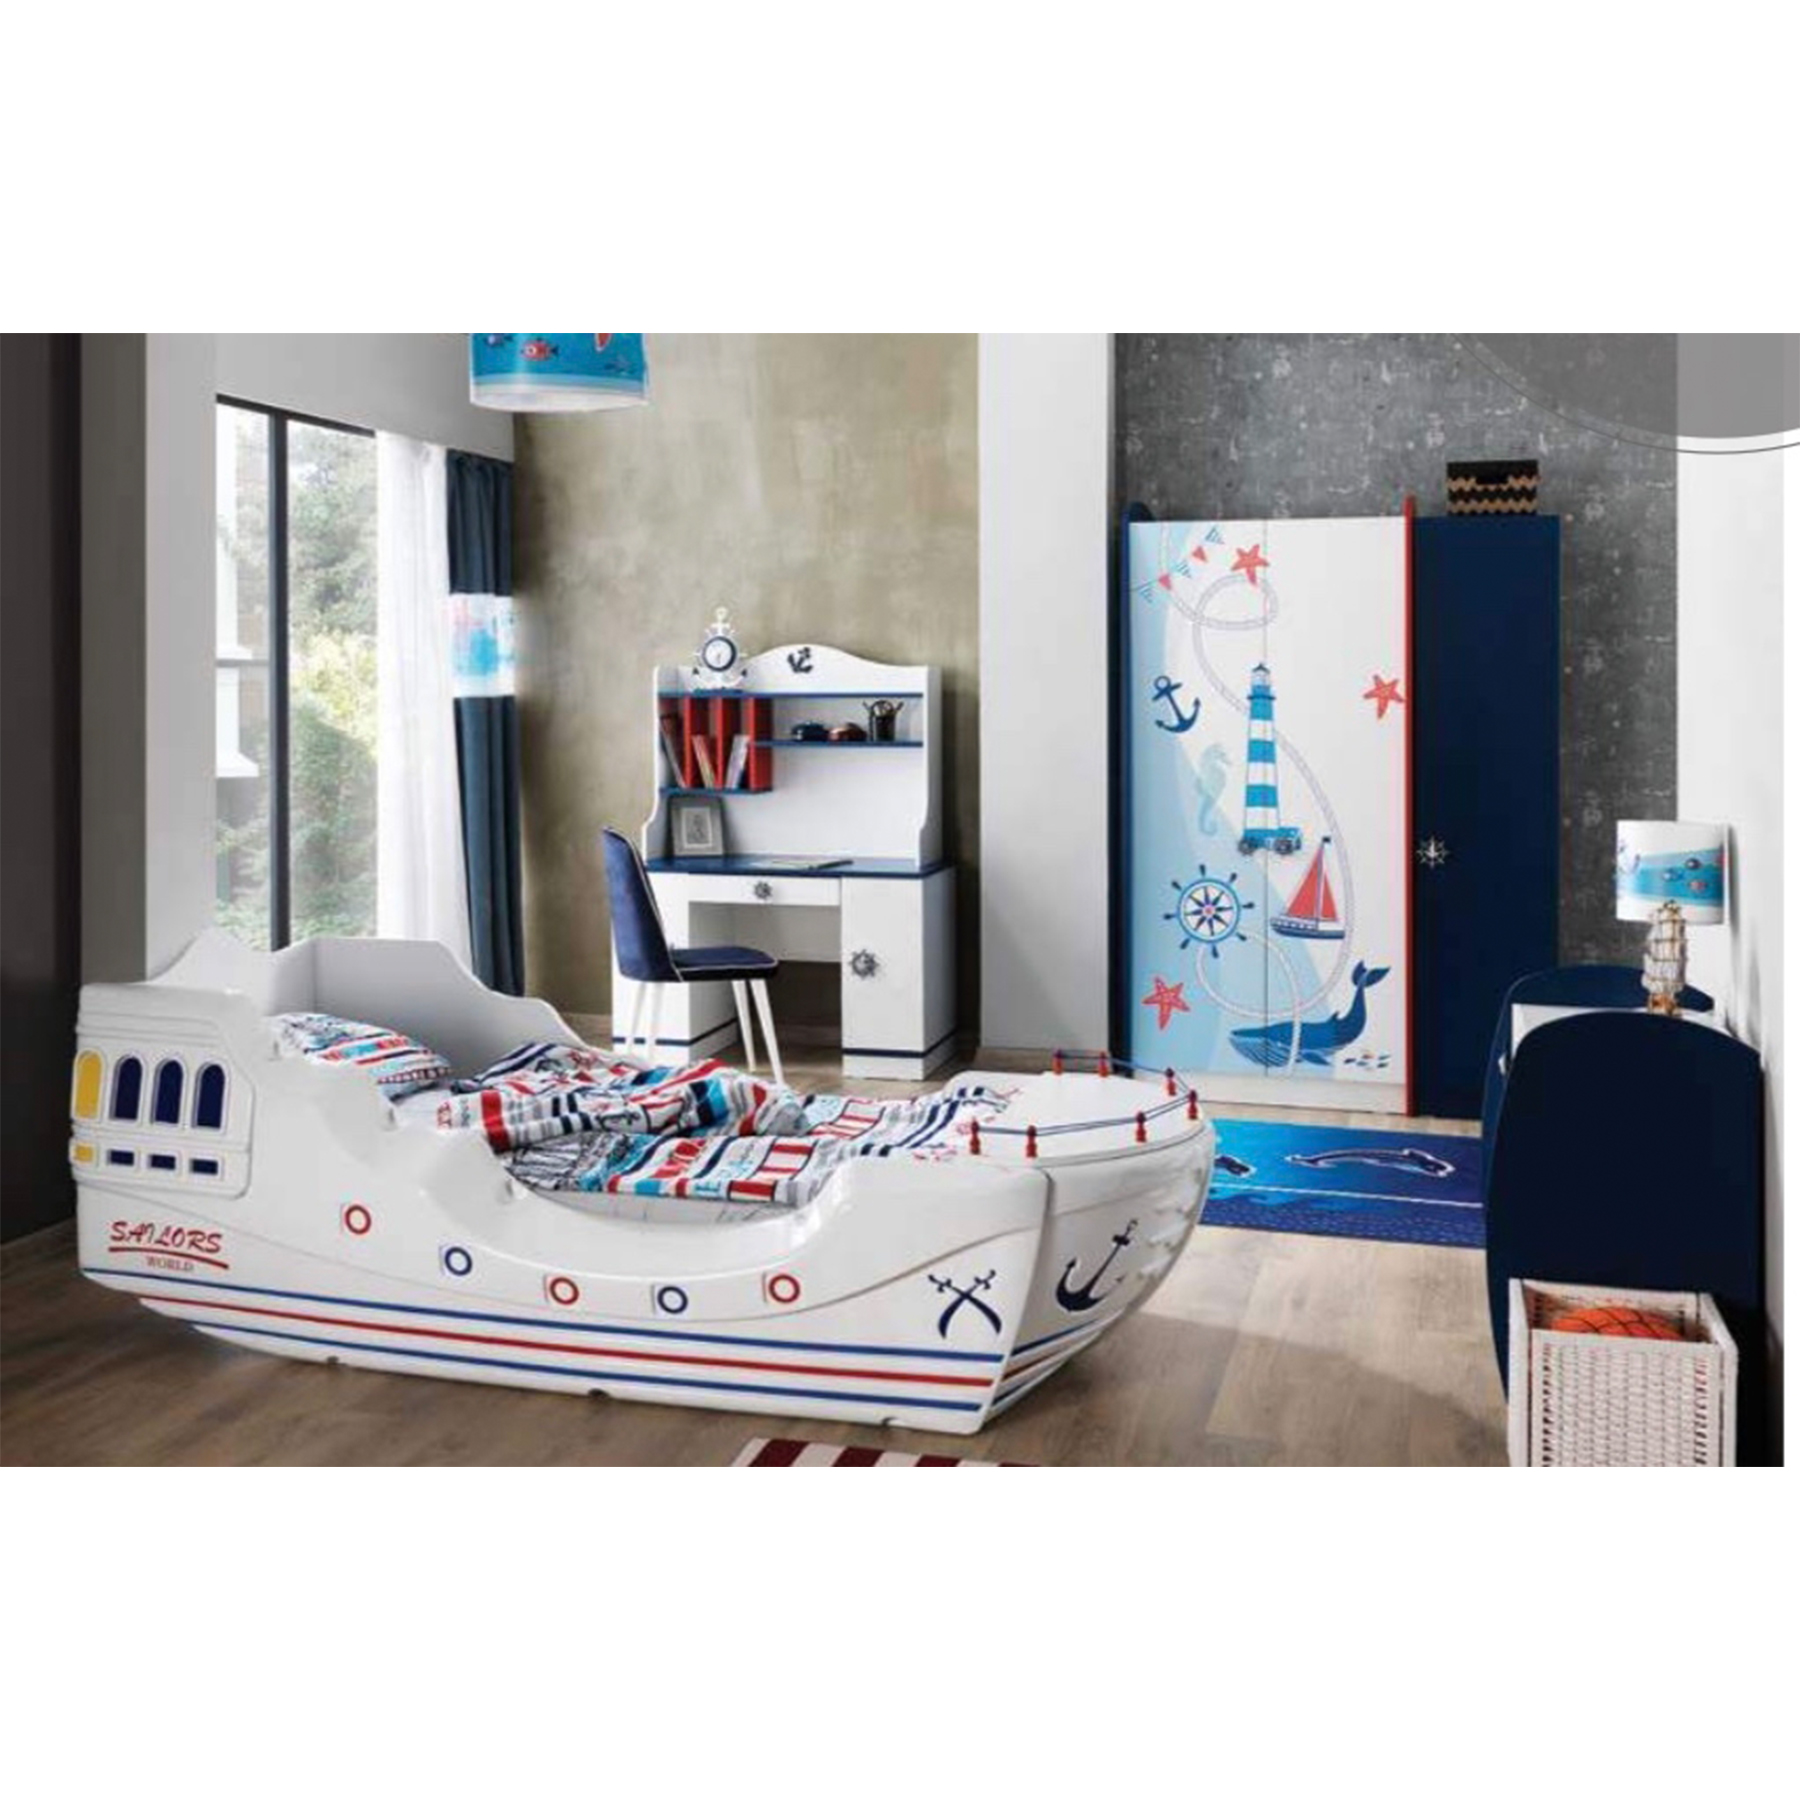 decor-and-design-furniture-car-beds-kids_0000s_0000_IMG_2559